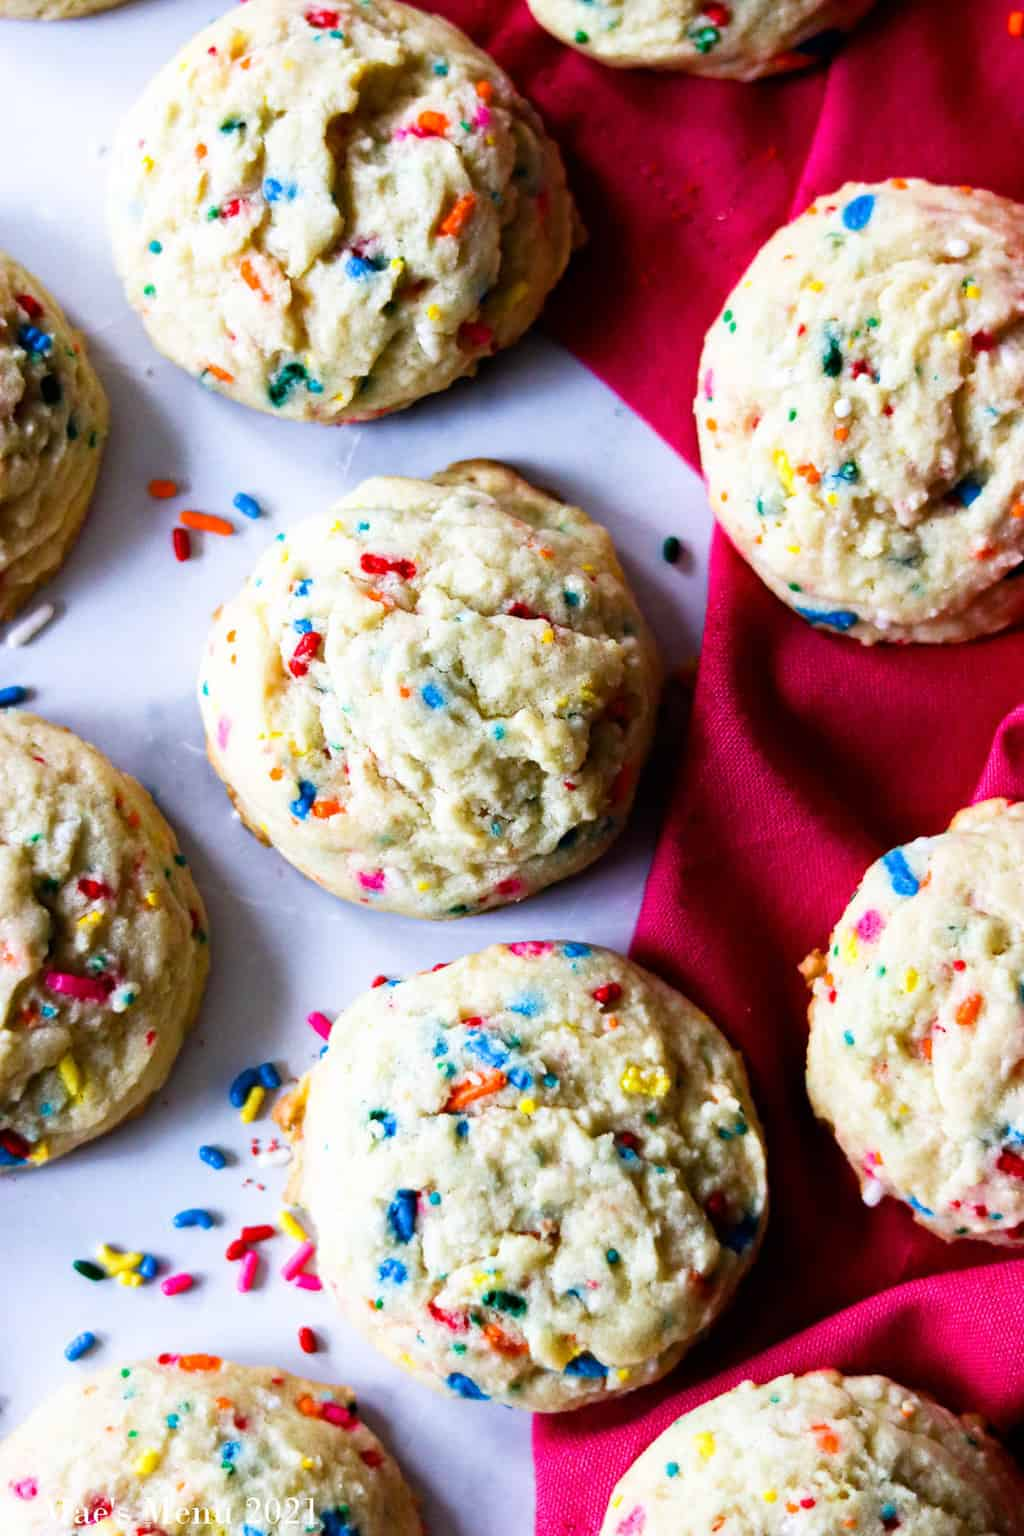 An up-close shot of funfetti cookies on a counter and pink towel with sprinkles between them